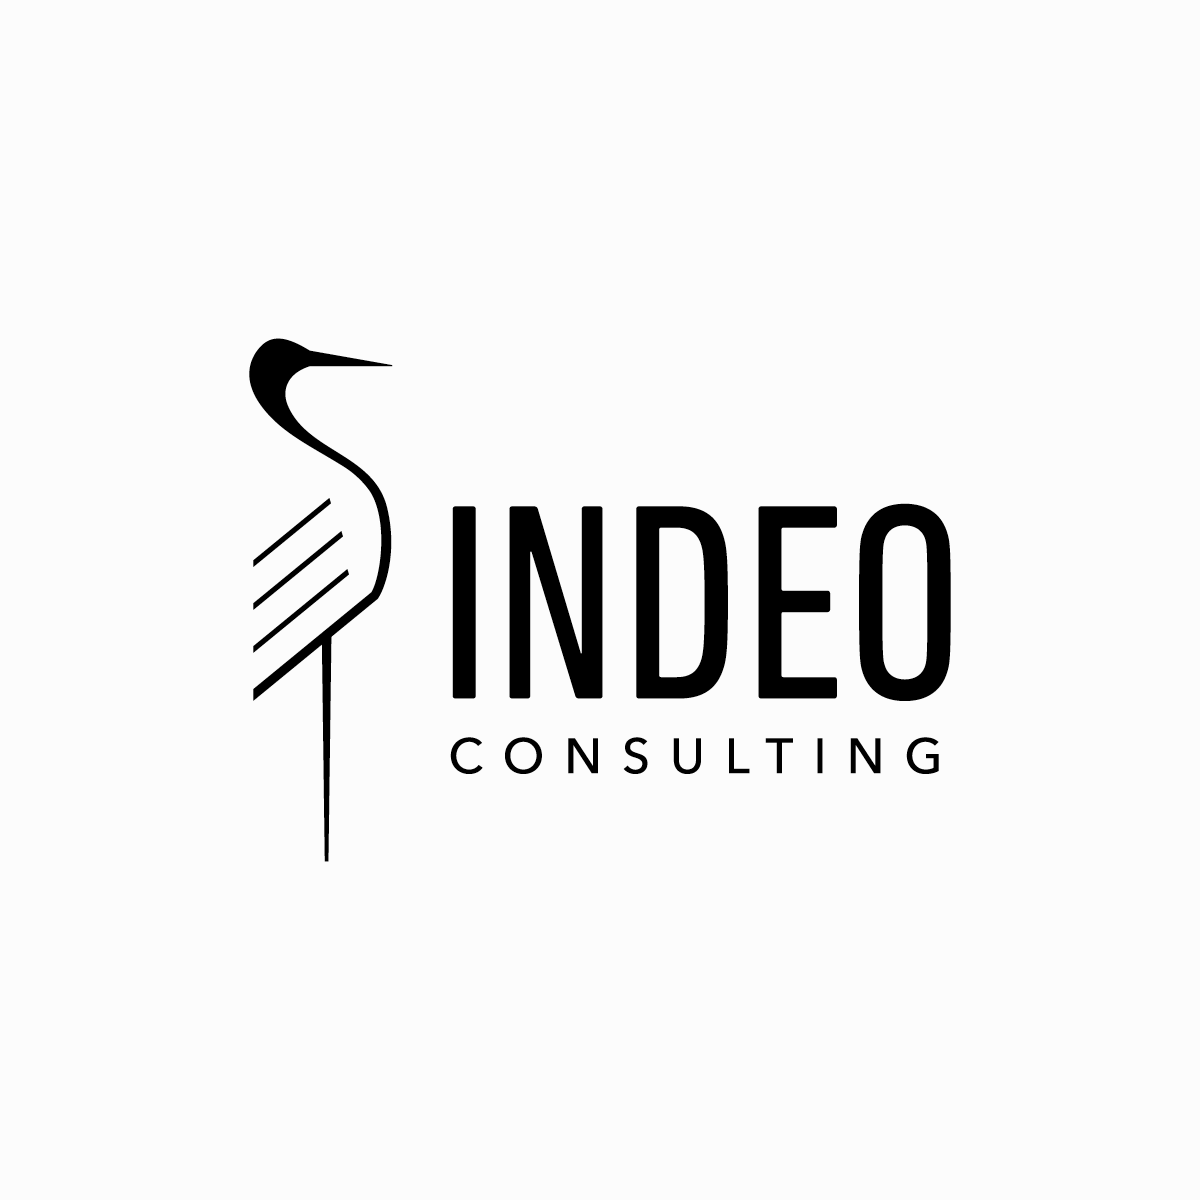 Logo & Visual identity for  Indeo Consulting , a sustainable company. 2013, Paris, France.